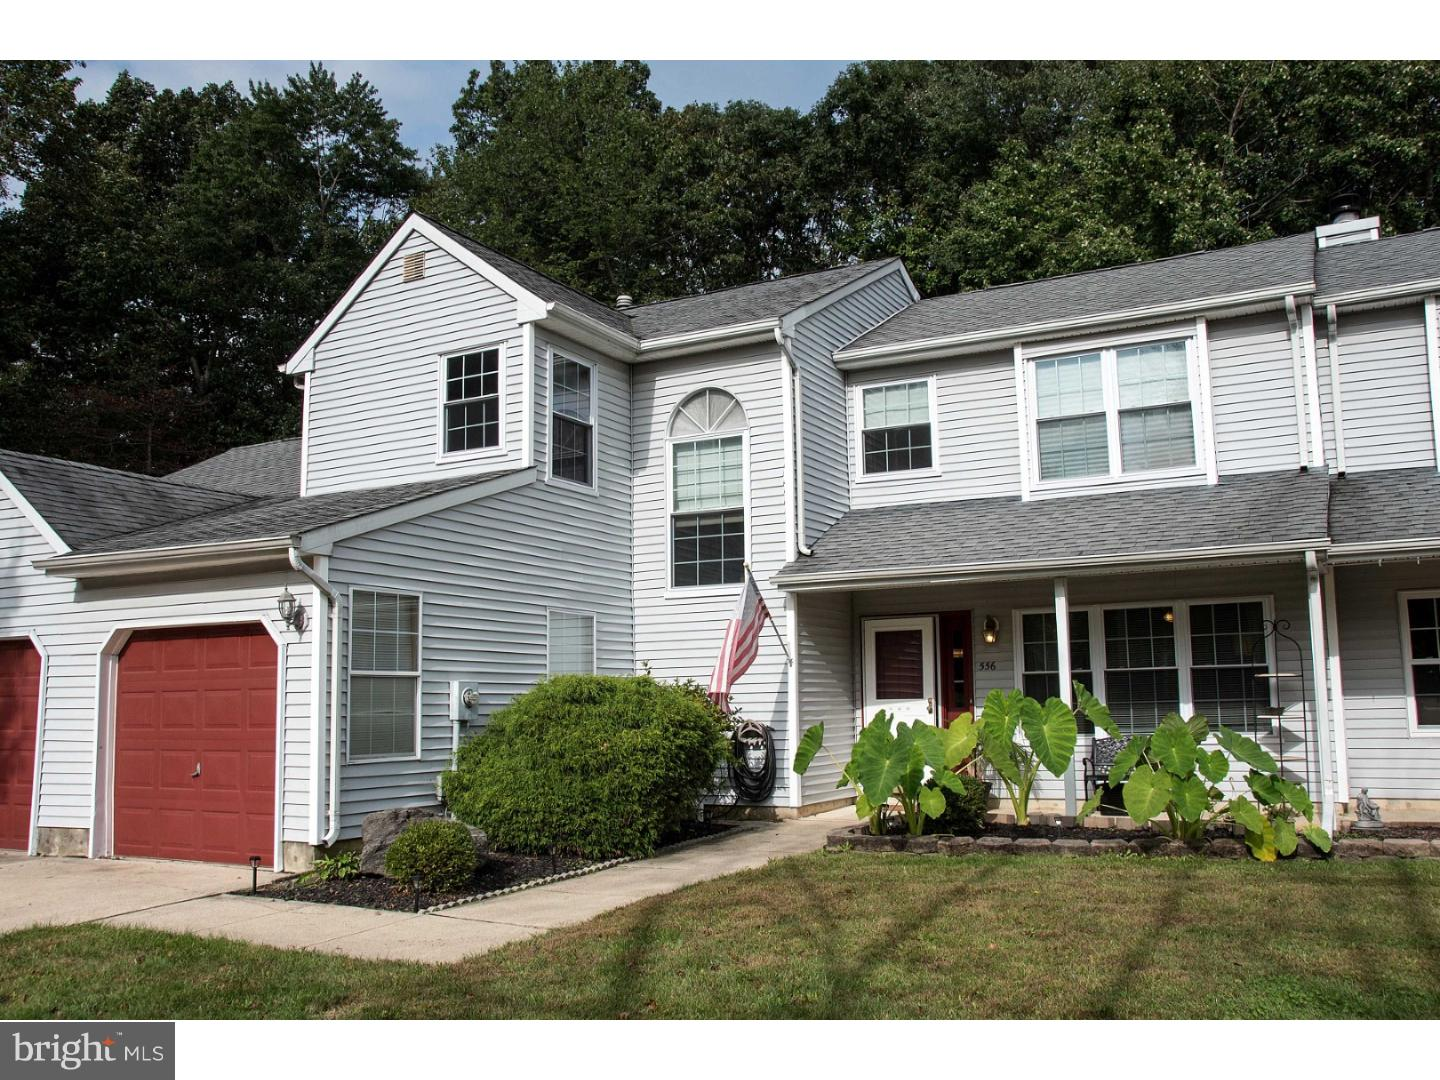 Single Family Home for Sale at 556 ONE MILE RD S East Windsor, New Jersey 08520 United StatesMunicipality: East Windsor Township